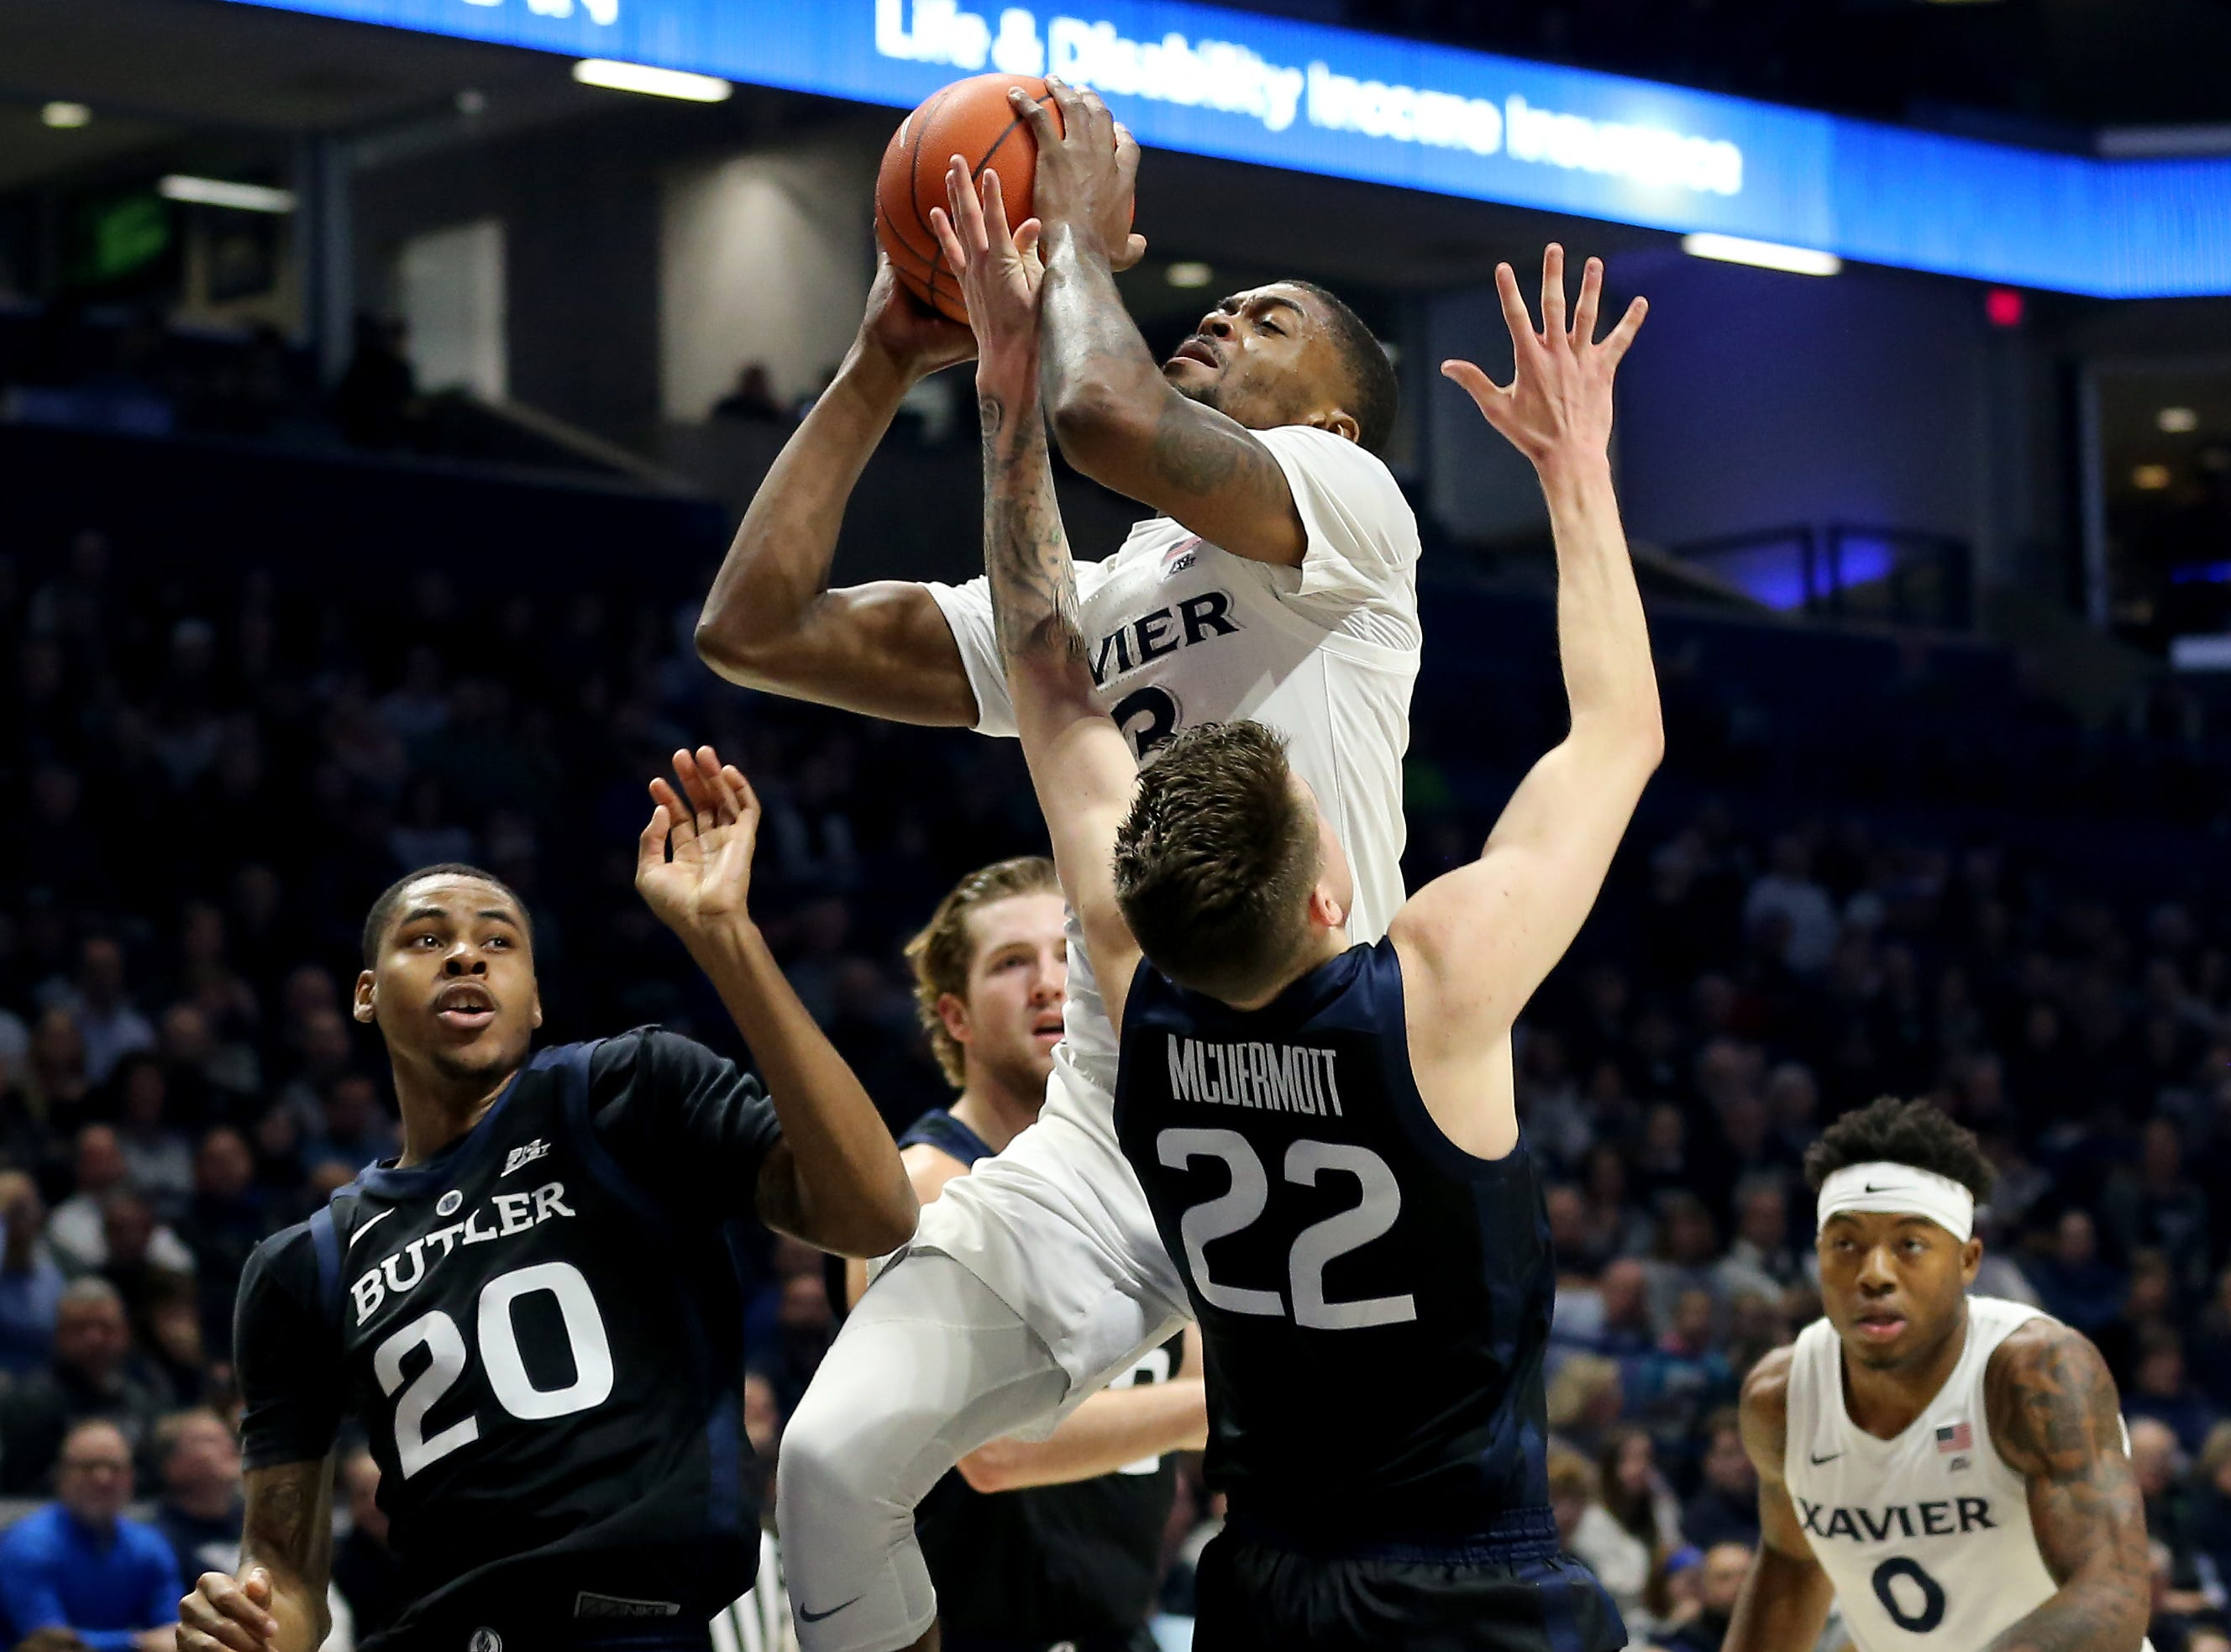 Xavier Musketeers forward Naji Marshall (13) goes up for a shot as Butler Bulldogs forward Sean McDermott (22) defends in the first half of an NCAA college basketball game, Sunday, Jan. 13, 2019, at Cintas Center in Cincinnati.